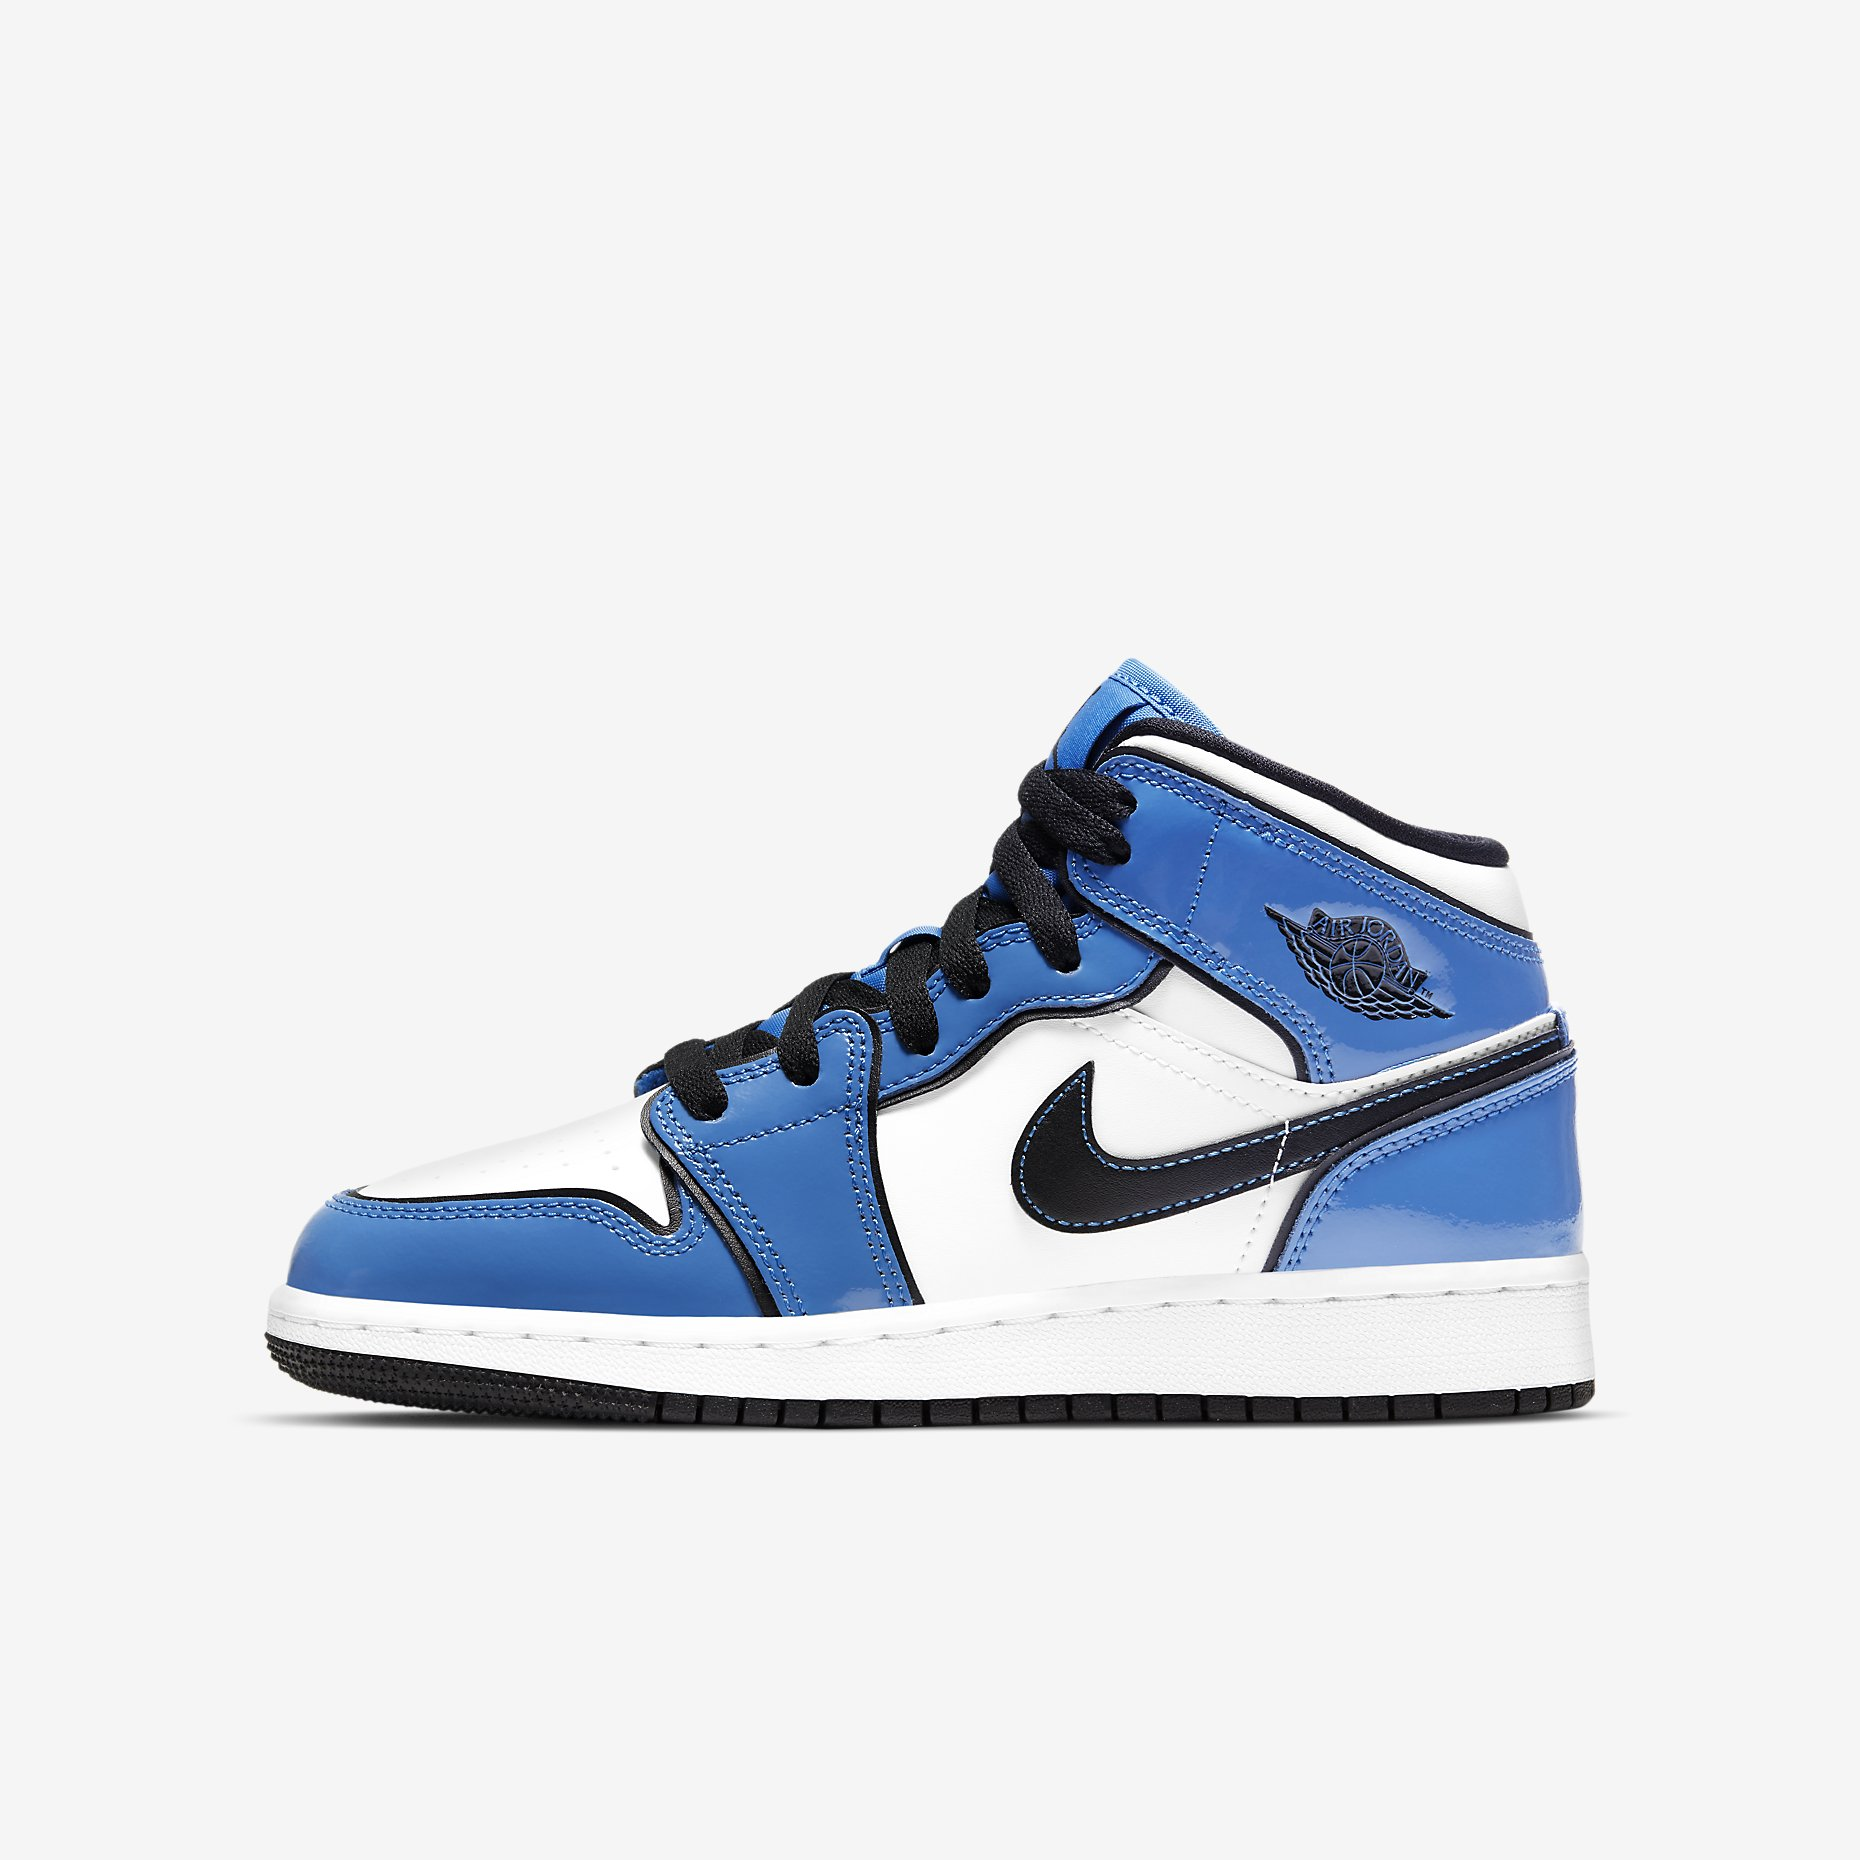 Air Jordan 1 Mid GS 'Signal Blue'}